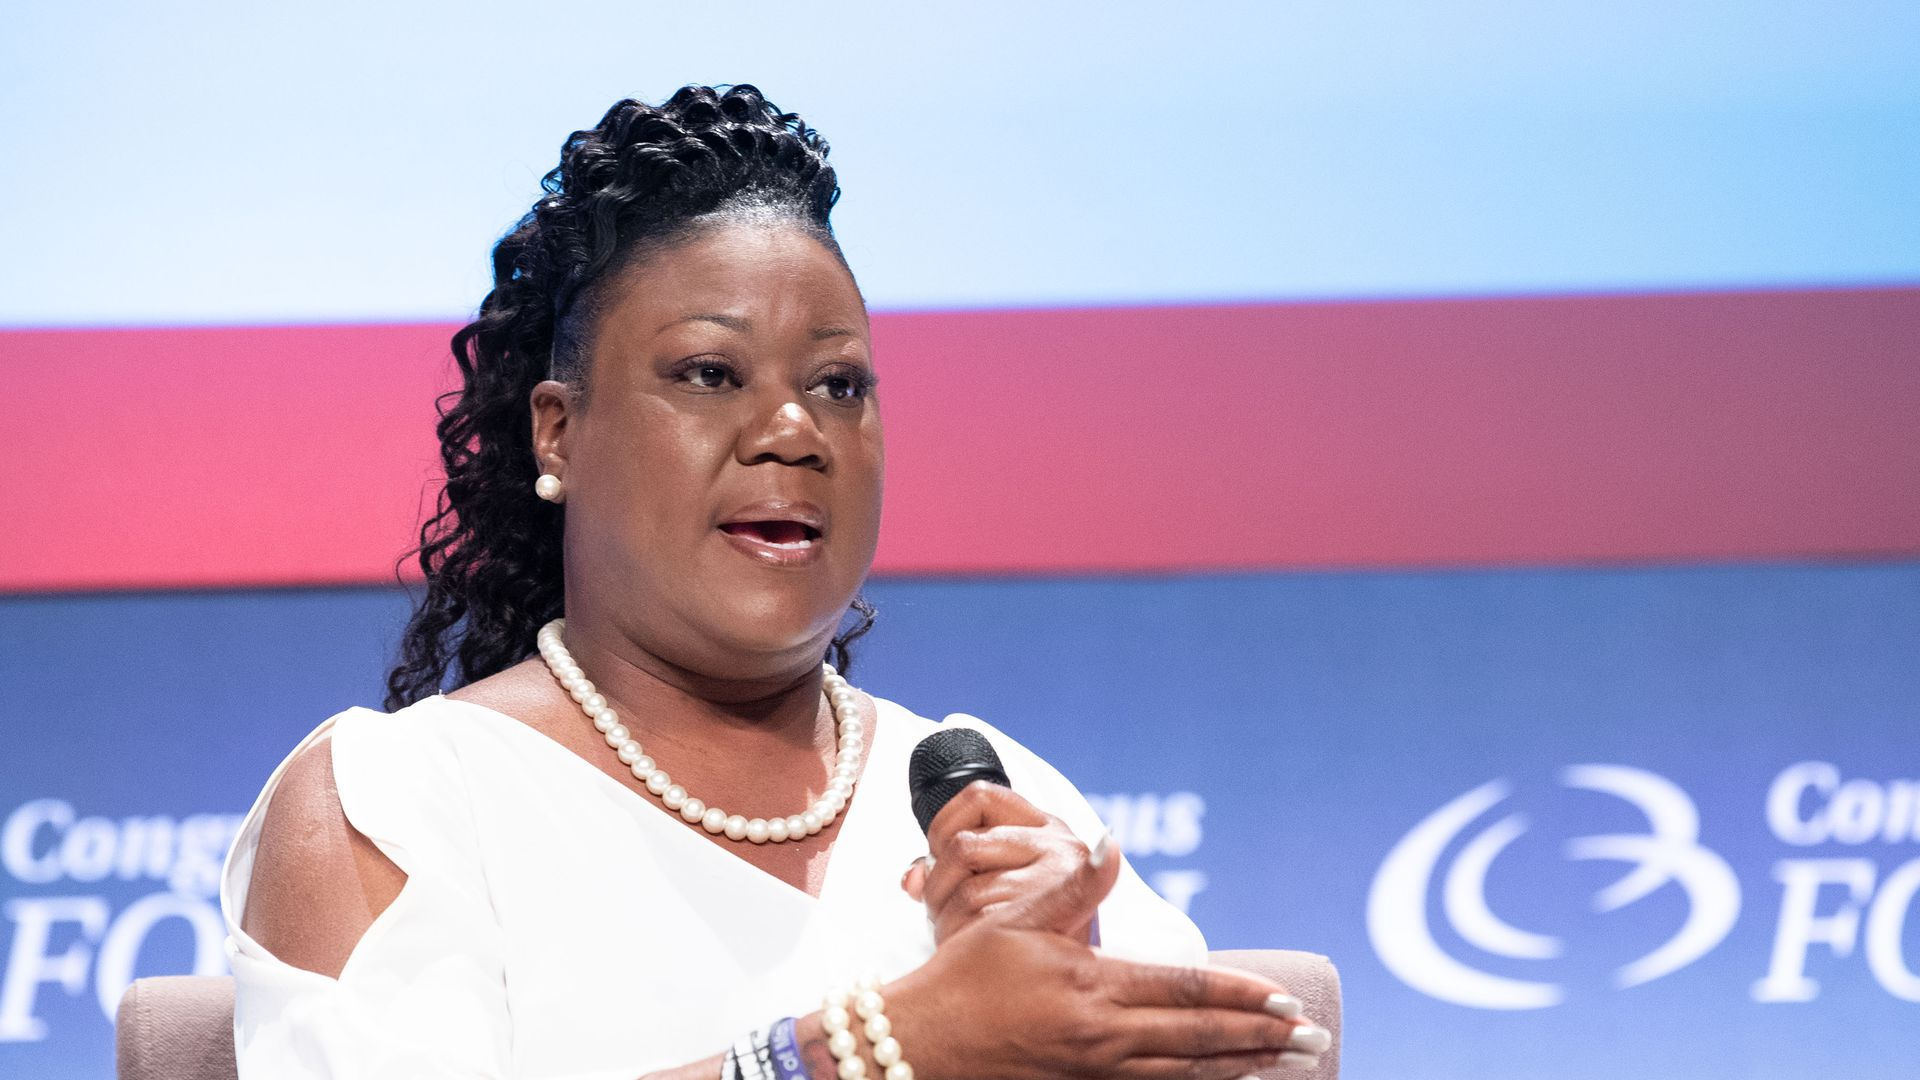 Sybrina Fulton, Trayvon Martin's mother, is running for office